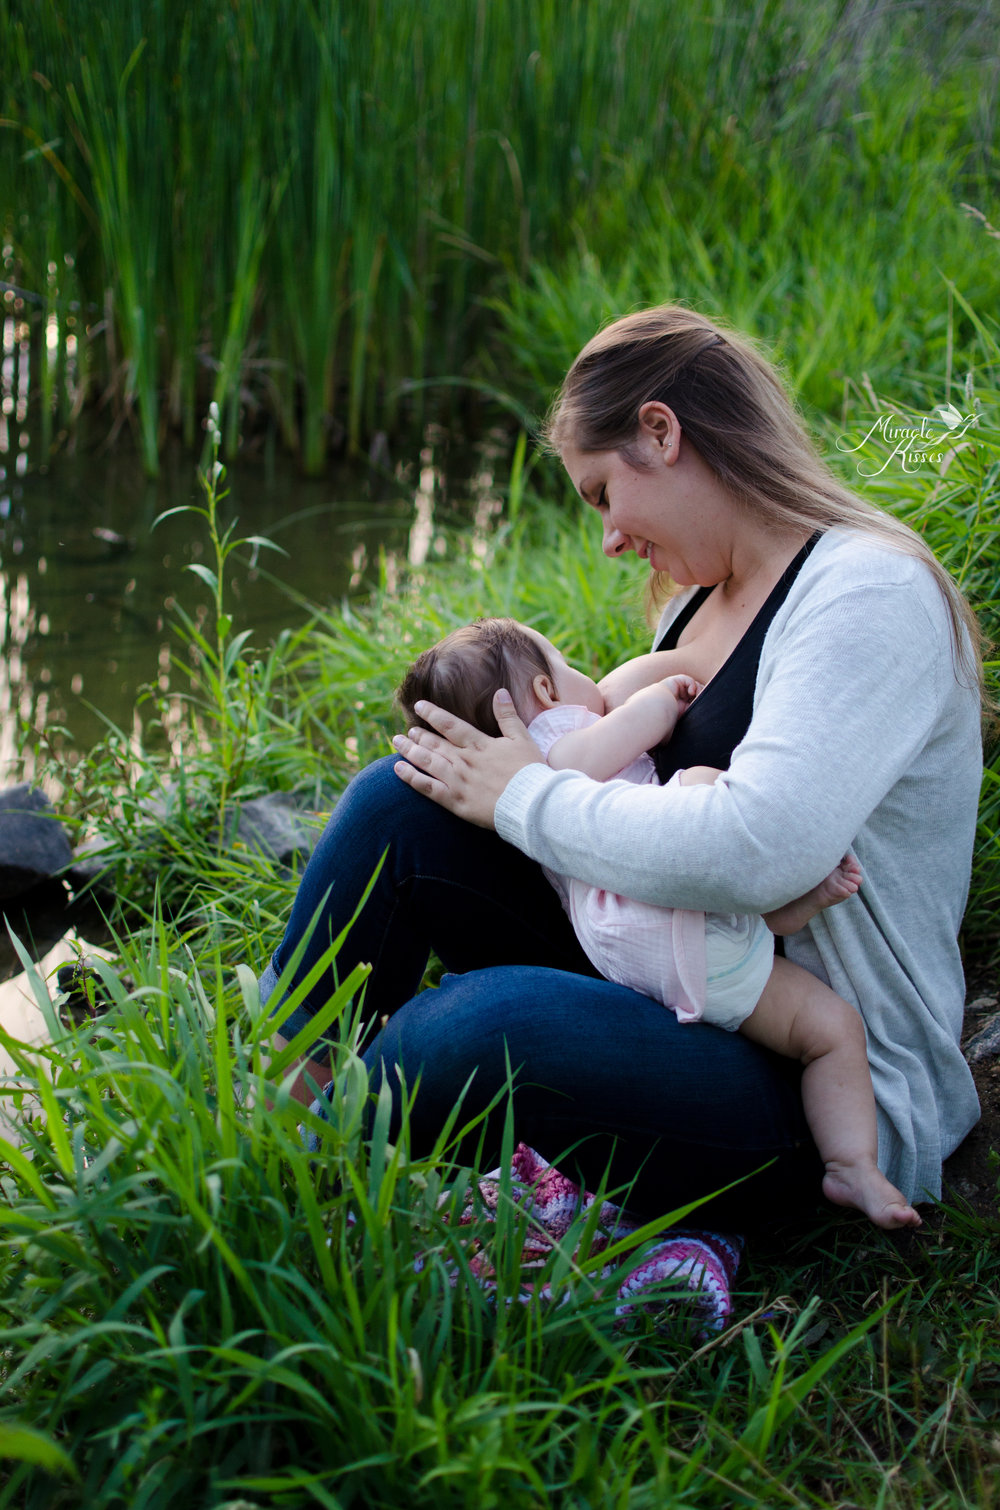 breastfeeding in nature, nursing in public, normalize breastfeeding